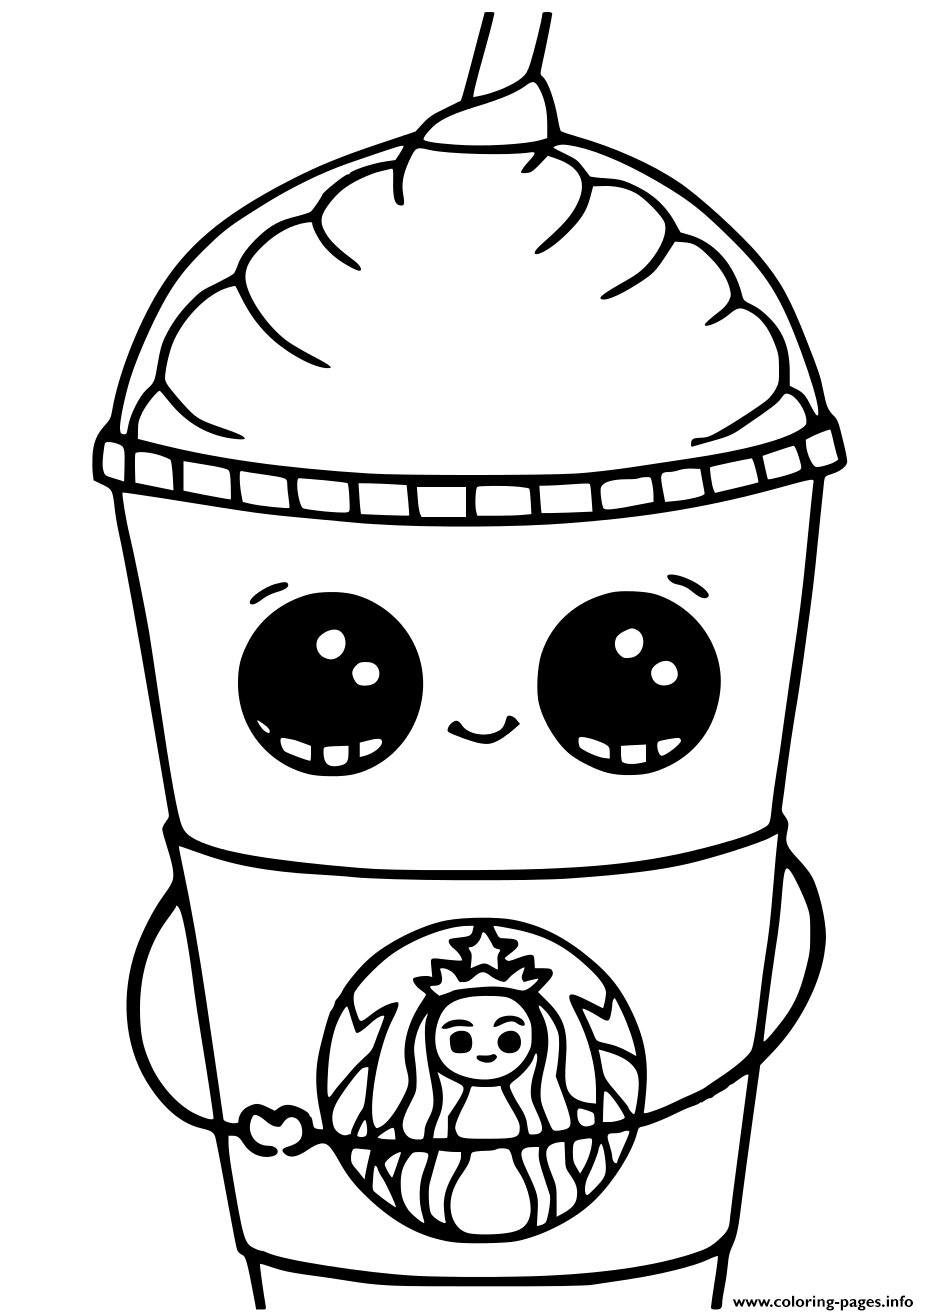 Print Starbucks Cups Kawaii Coloring Pages In 2020 Creation Coloring Pages Food Coloring Pages Pusheen Coloring Pages